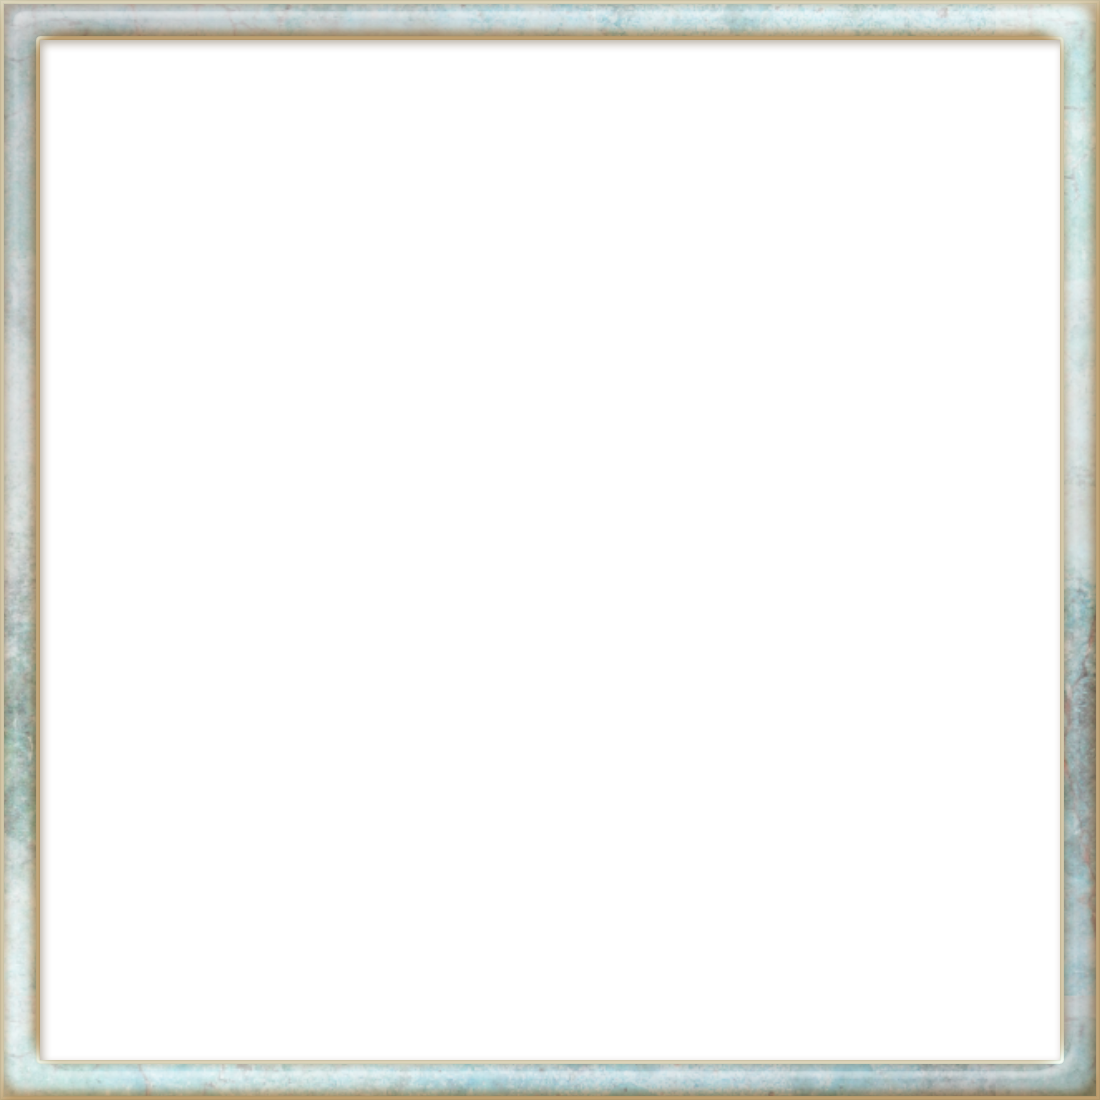 Transparent pictures free icons. Square picture frame png